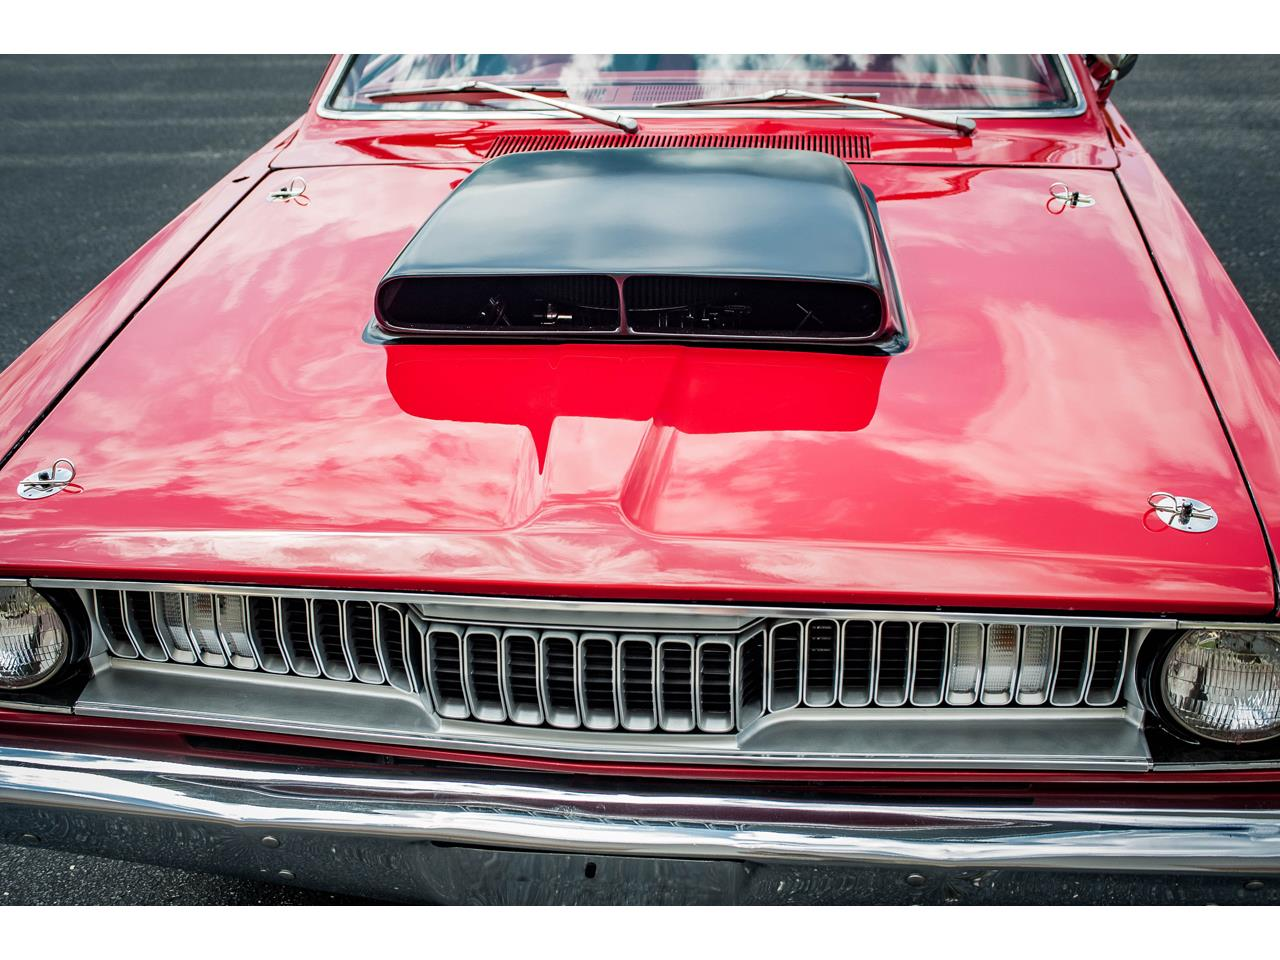 Large Picture of 1971 Plymouth Duster located in O'Fallon Illinois Offered by Gateway Classic Cars - St. Louis - QB9U